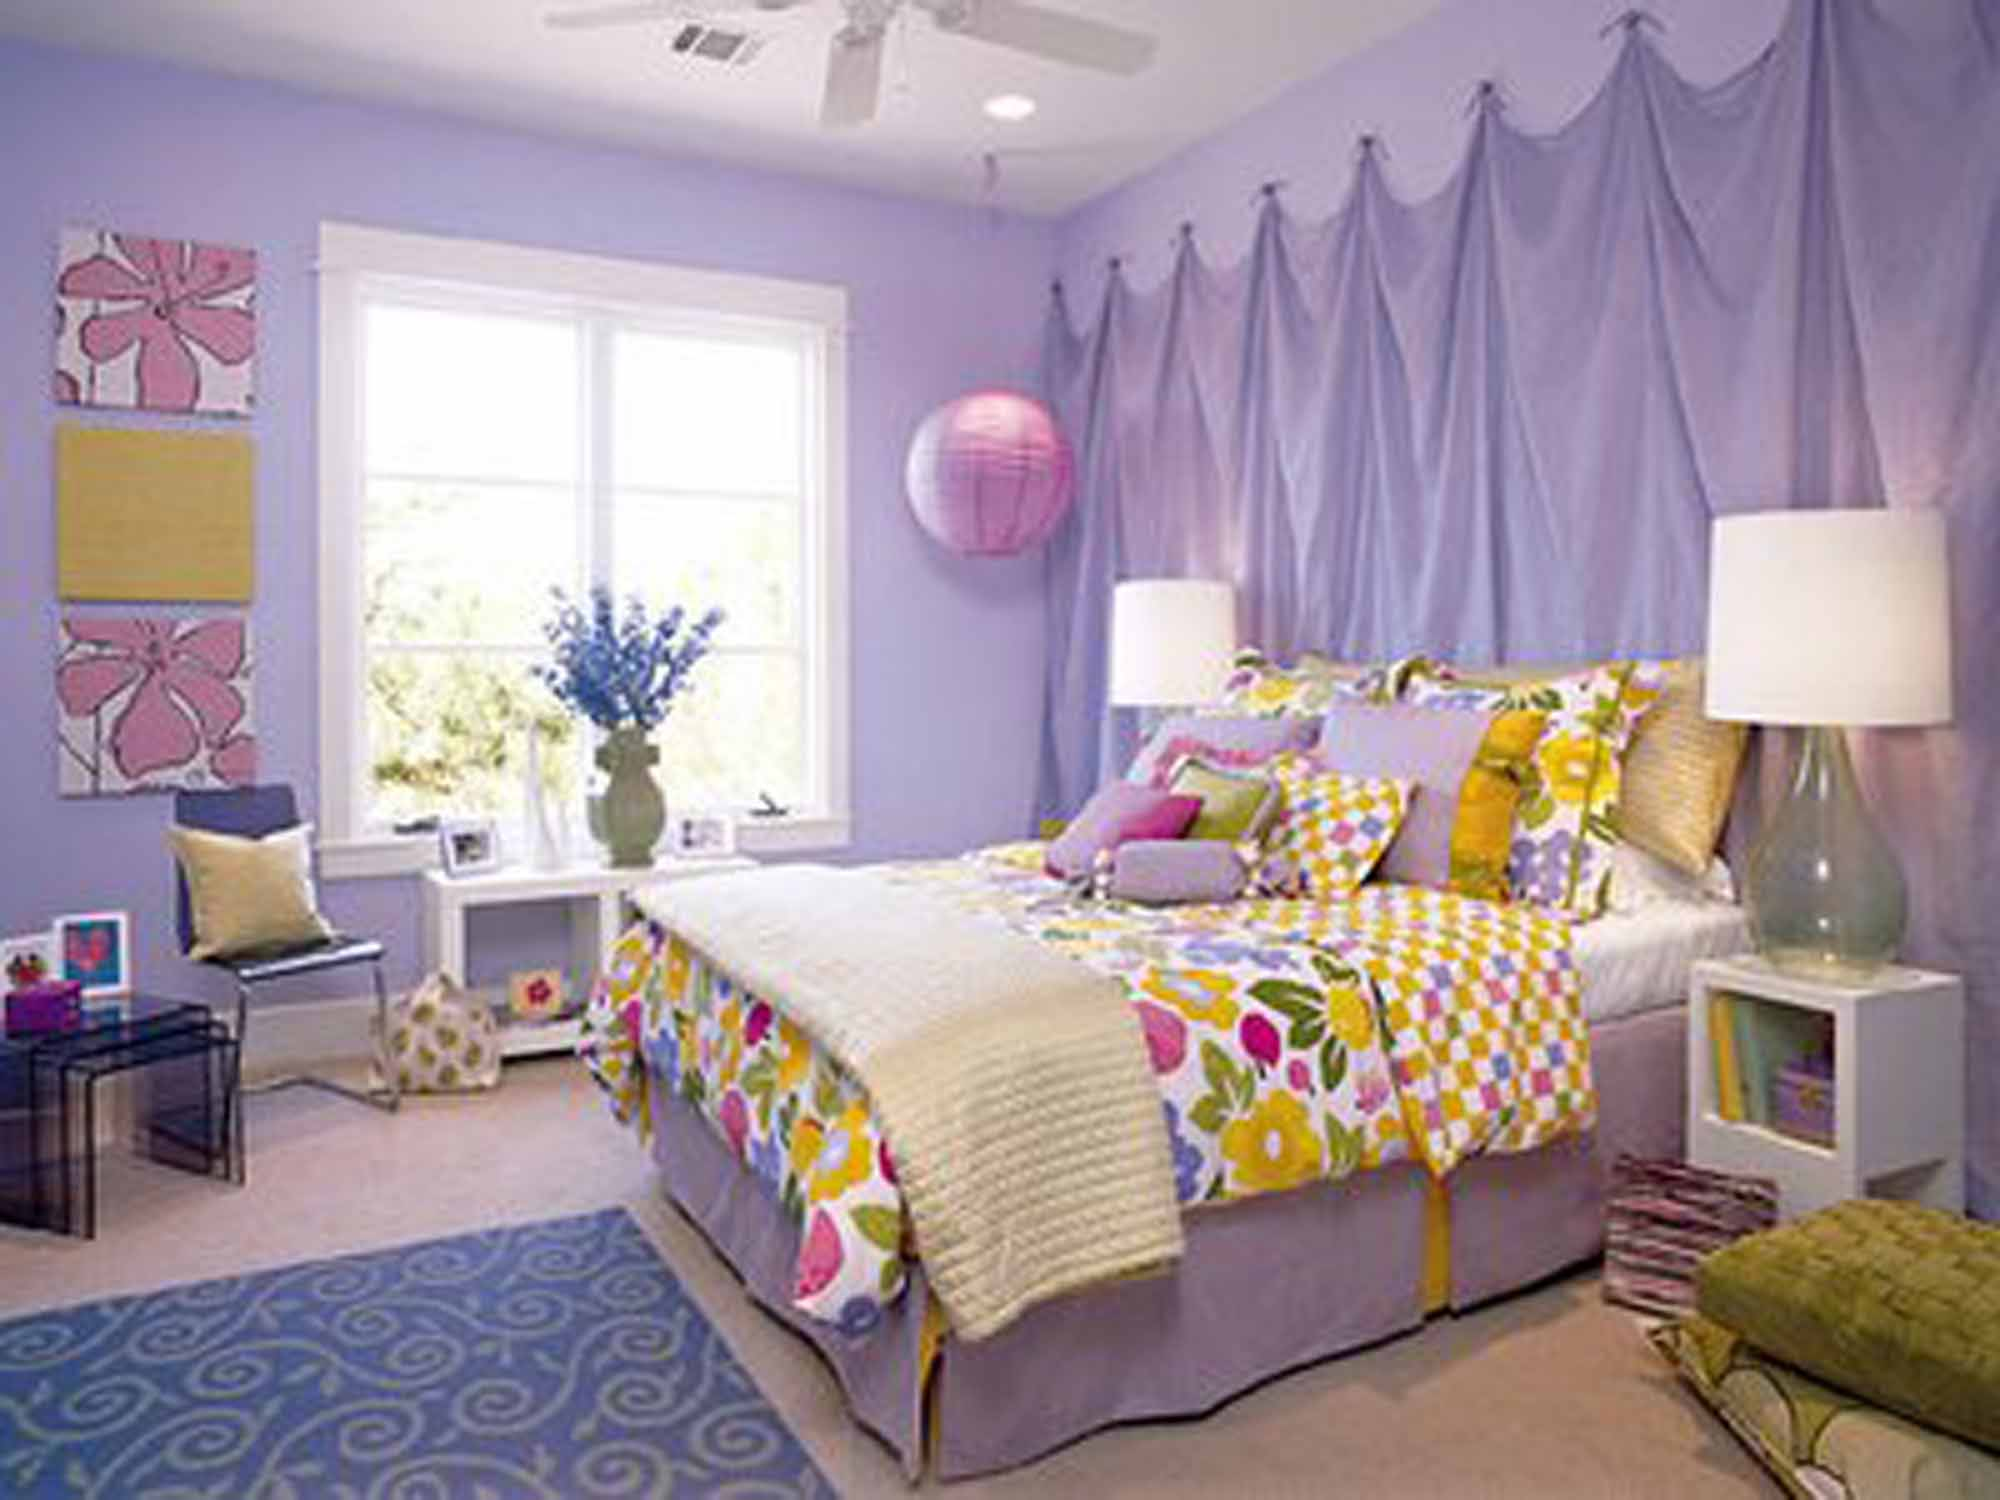 Purple Wall Paint And Curtain Decoration (View 1 of 10)